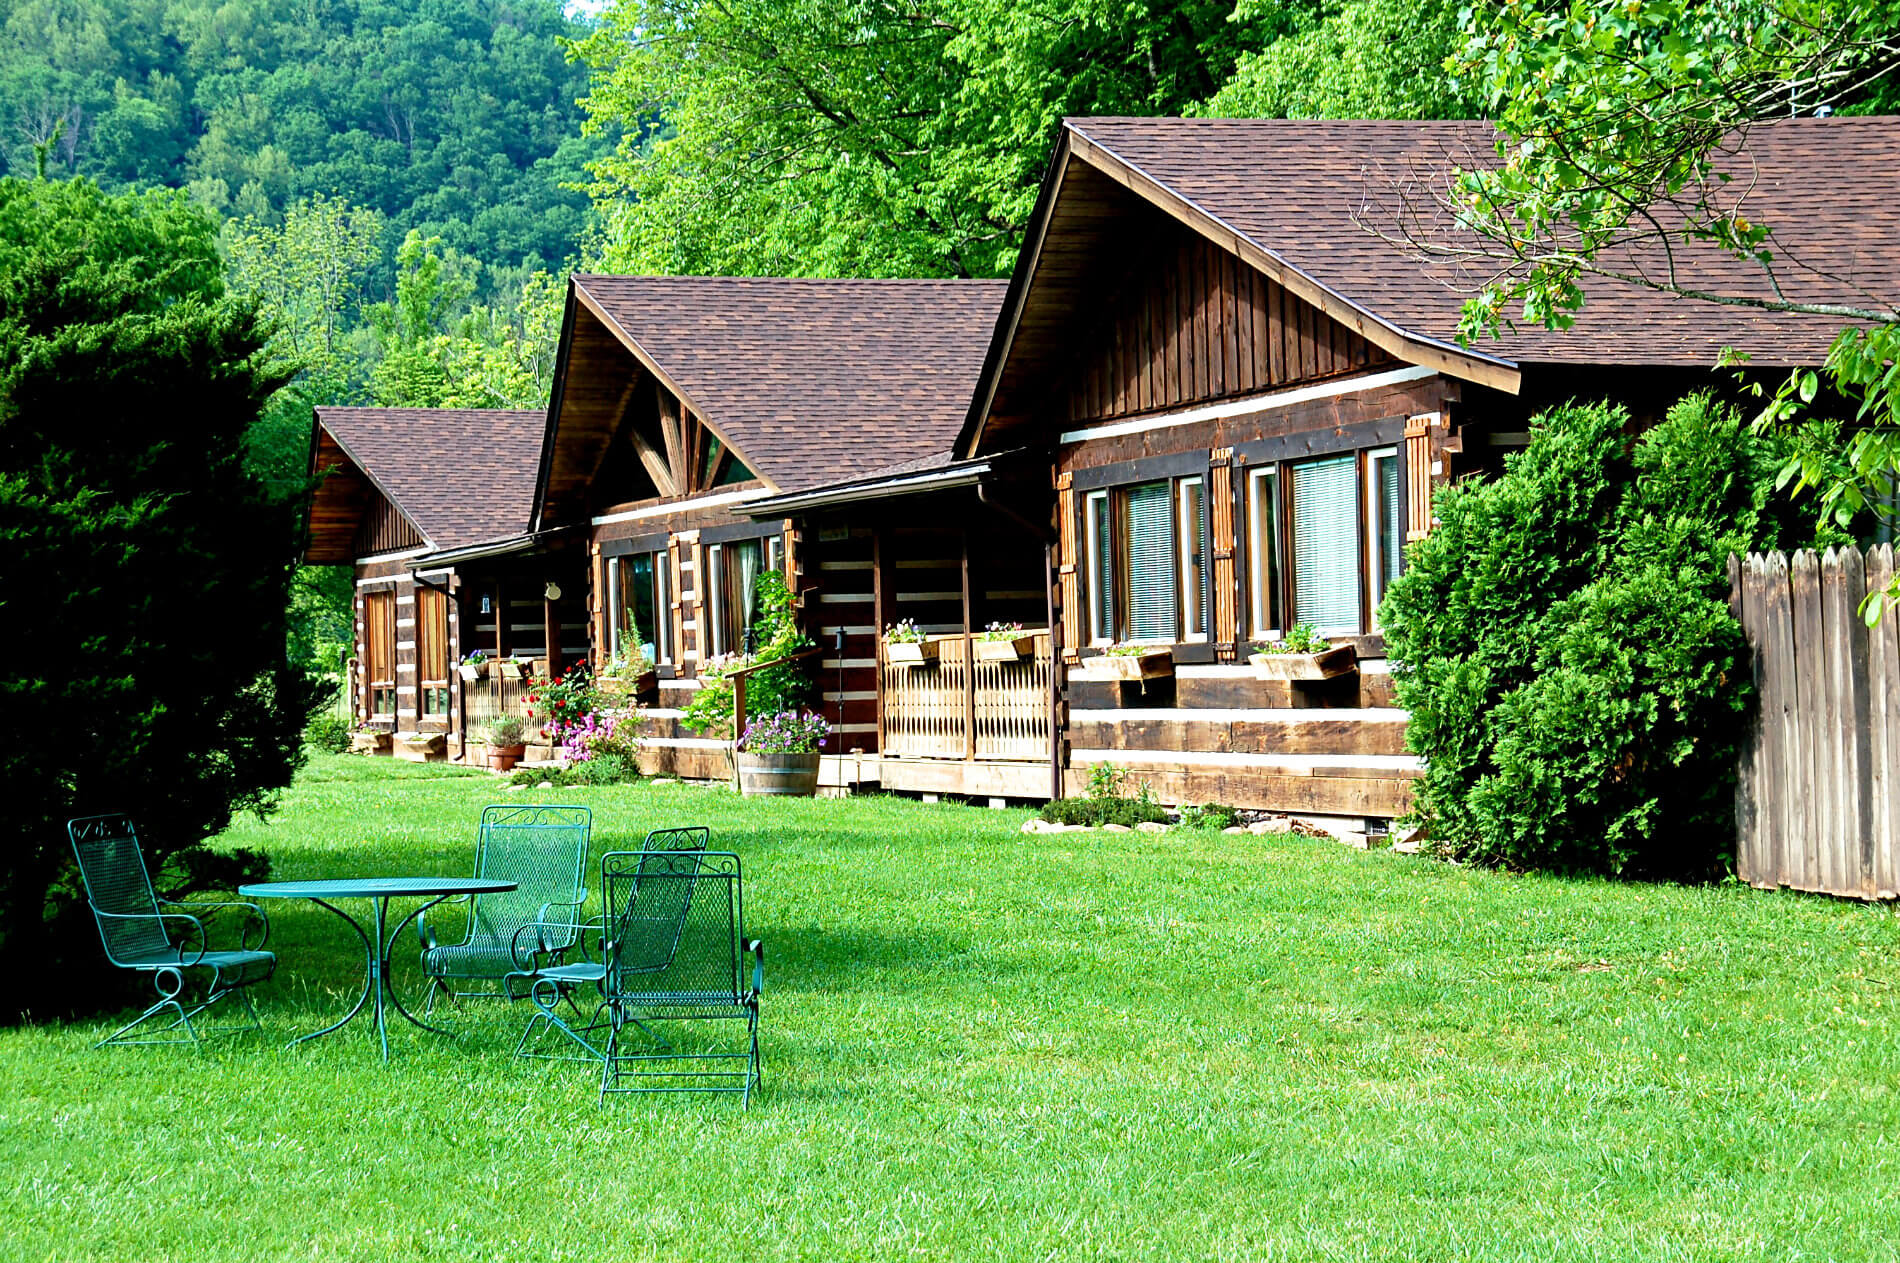 Line of rustic log cabins on green lawn surrounded by big trees